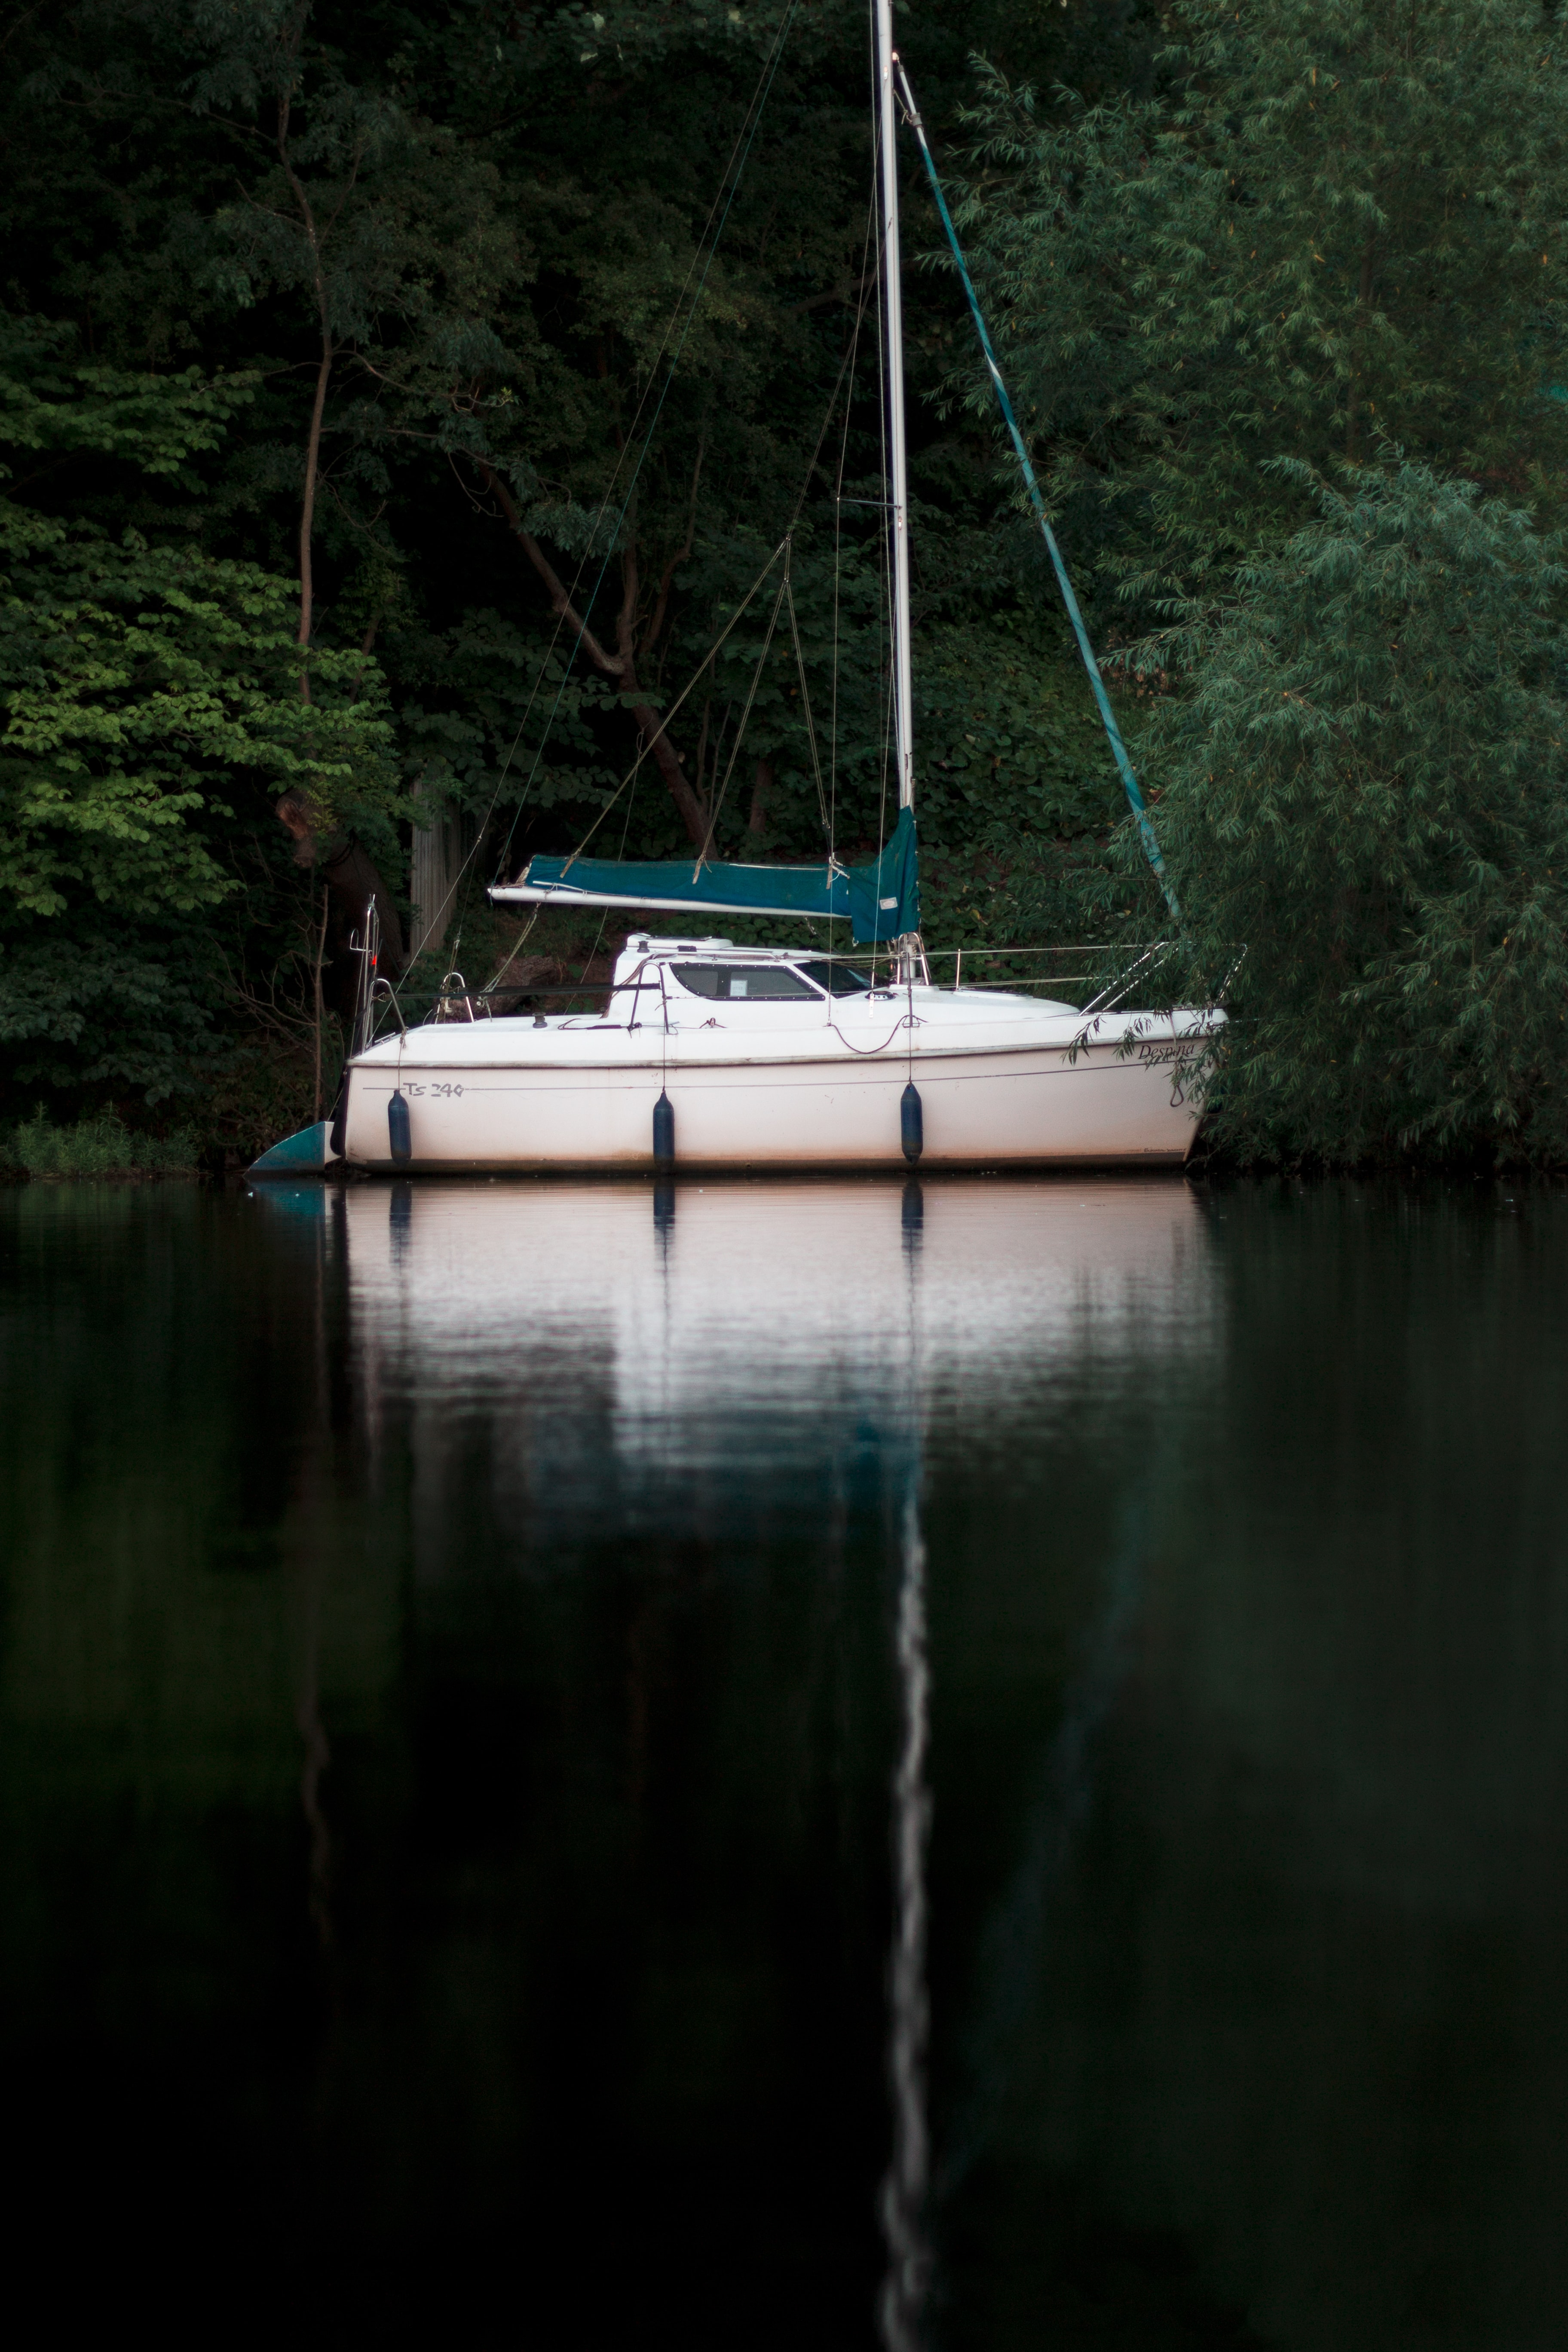 white and green motorboat on body of water